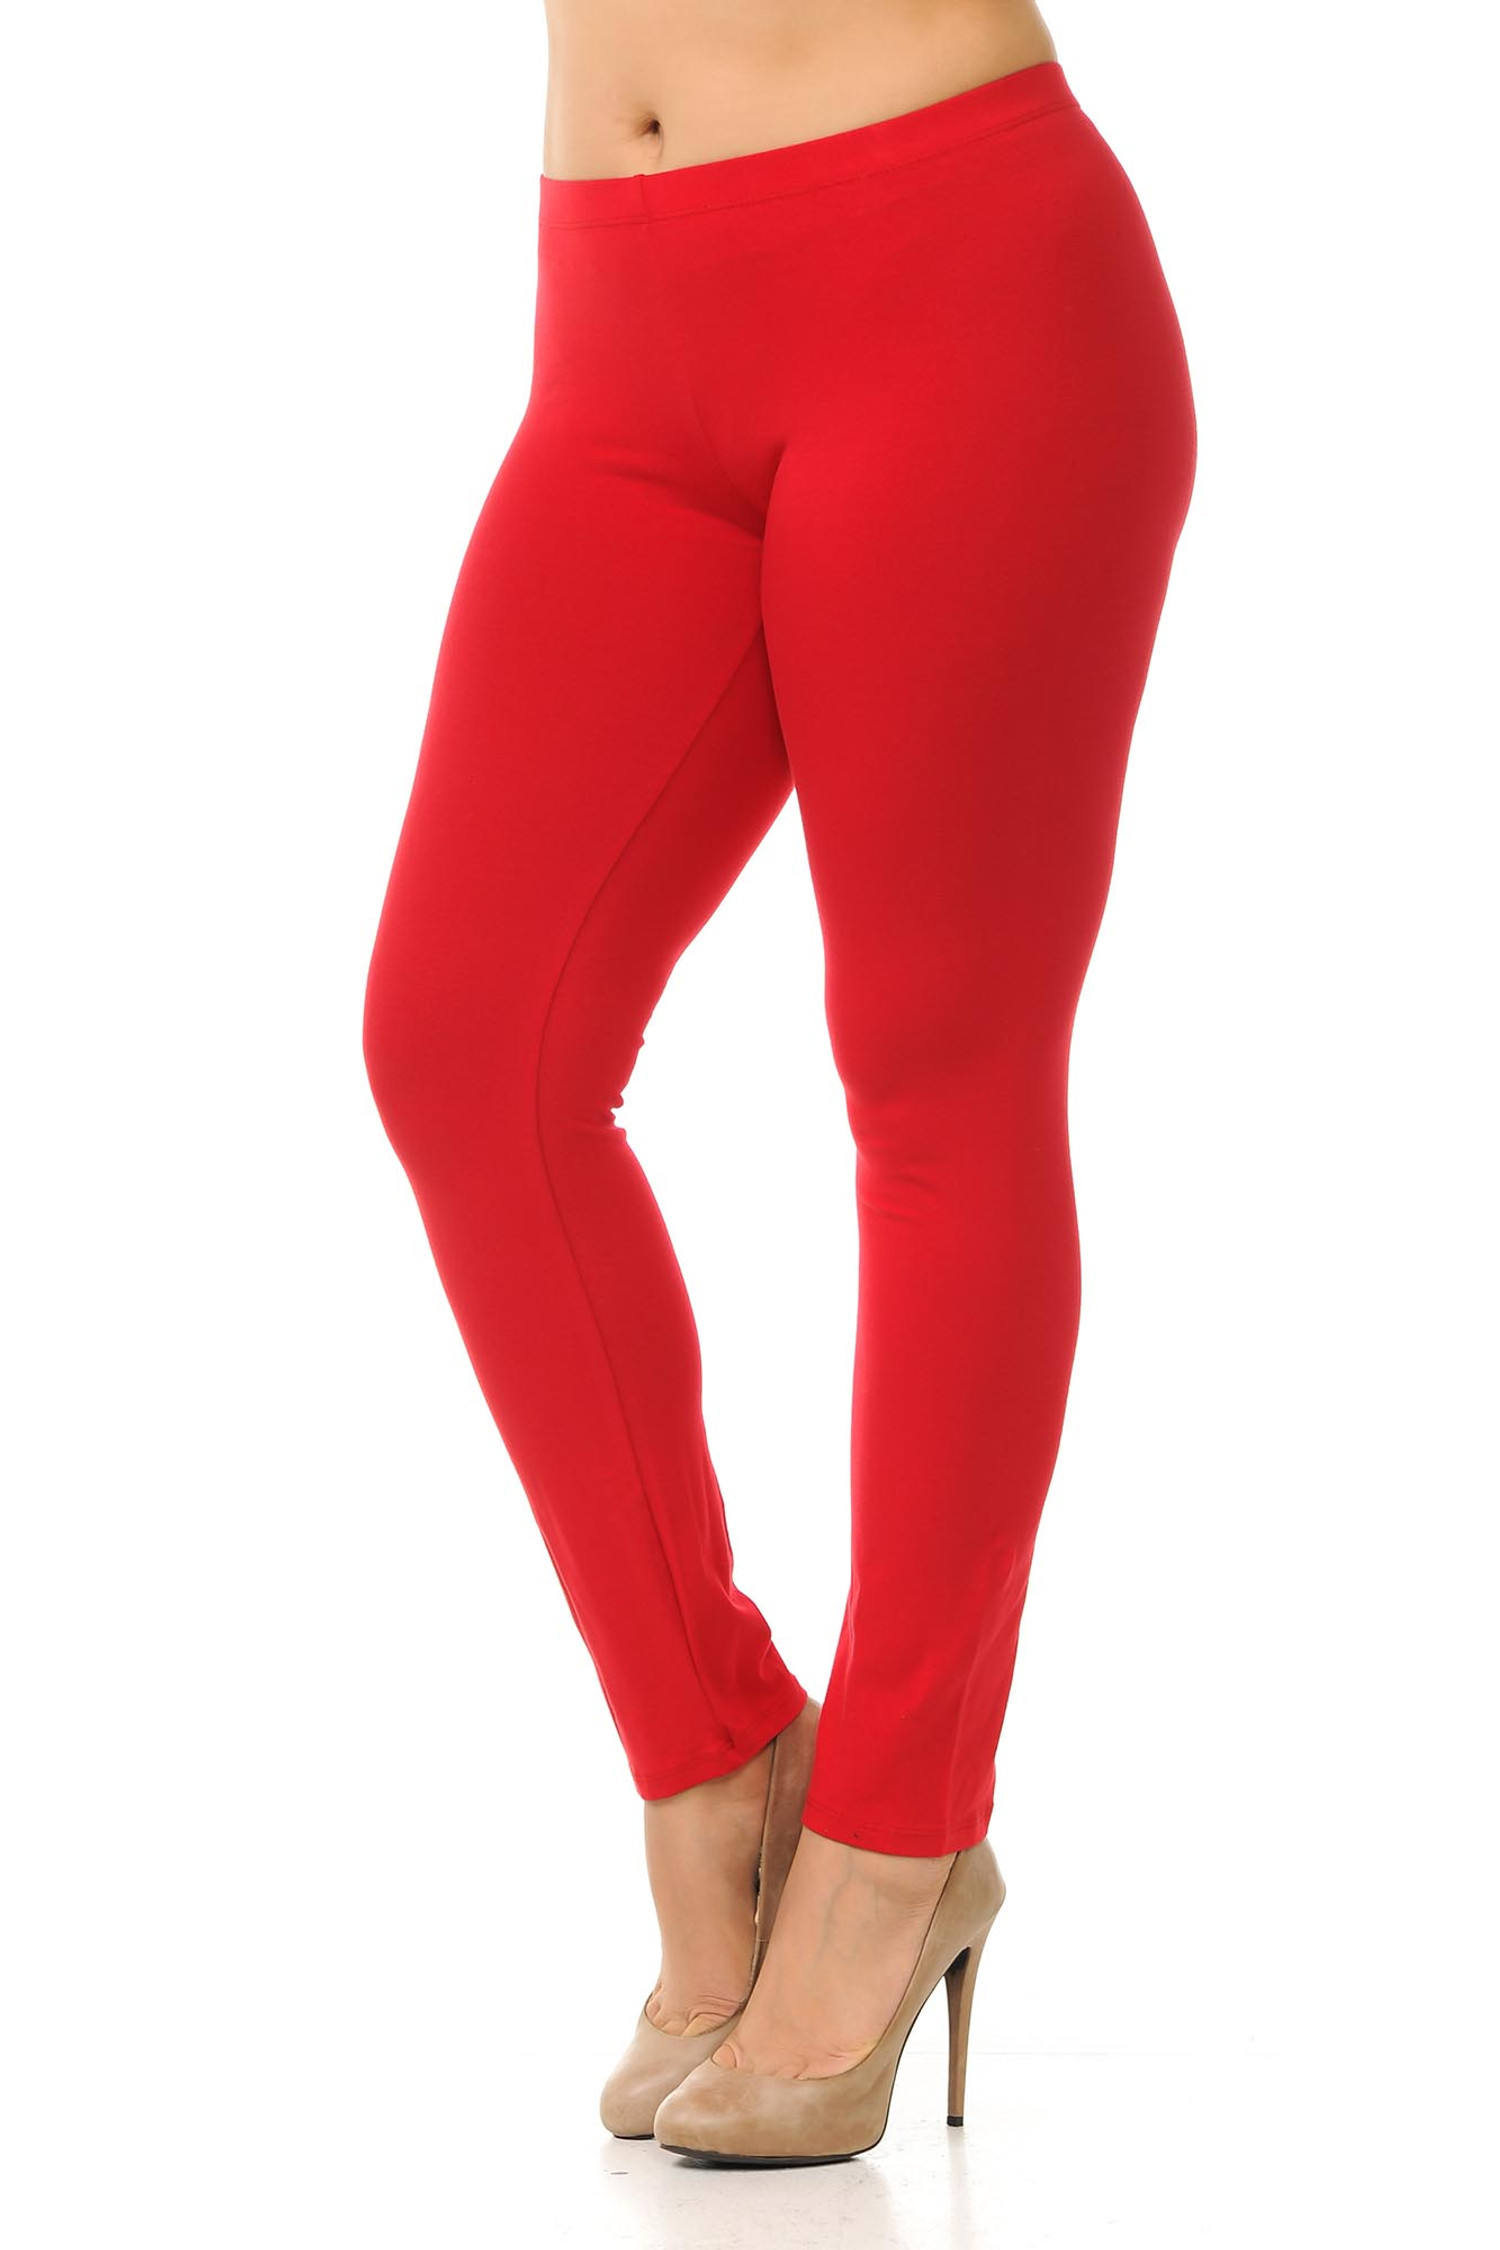 45 degree angled view of red plus size qUSA Cotton Full Length Leggings